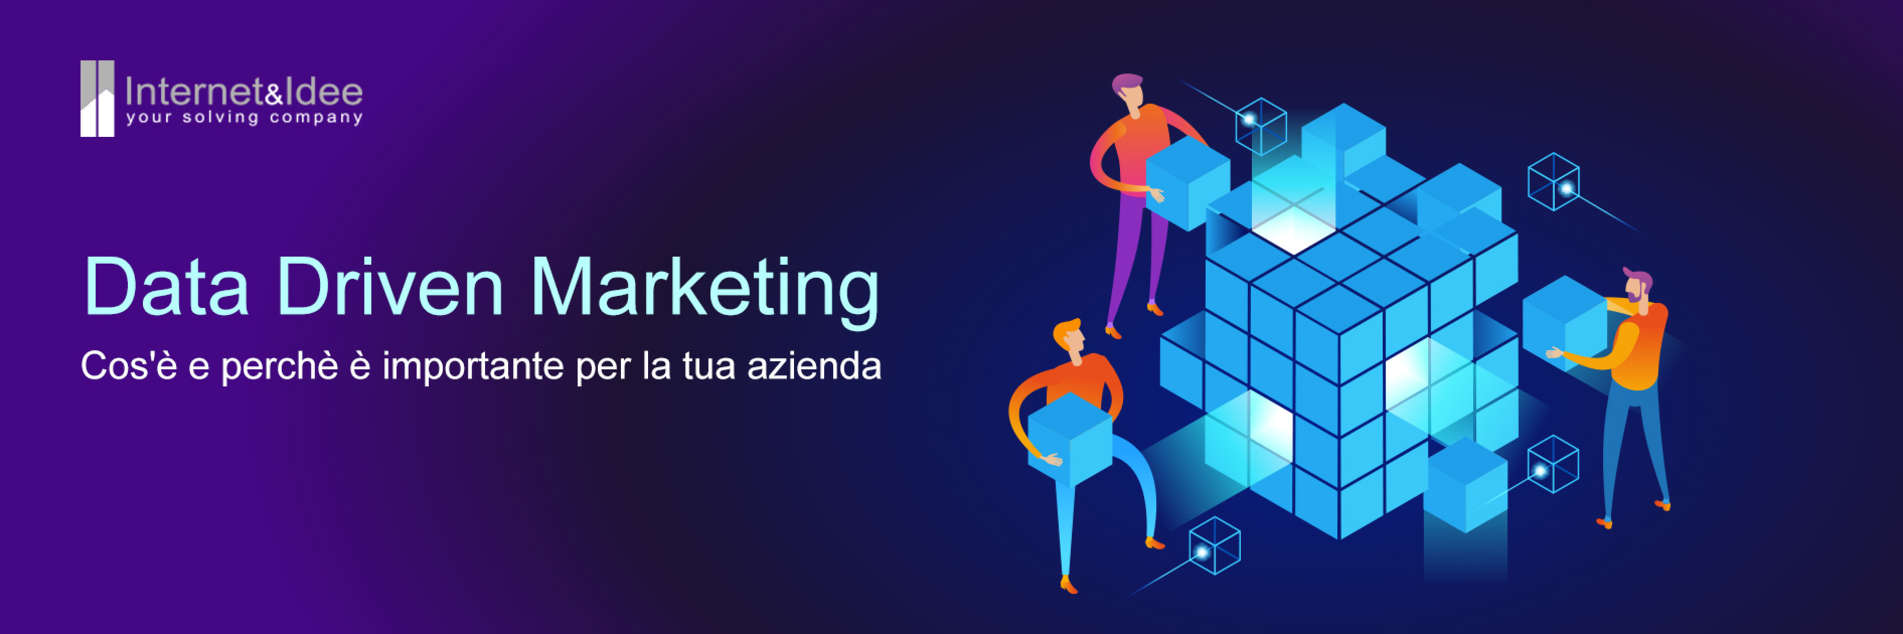 Data Driven Marketing: perché è importante per ogni azienda